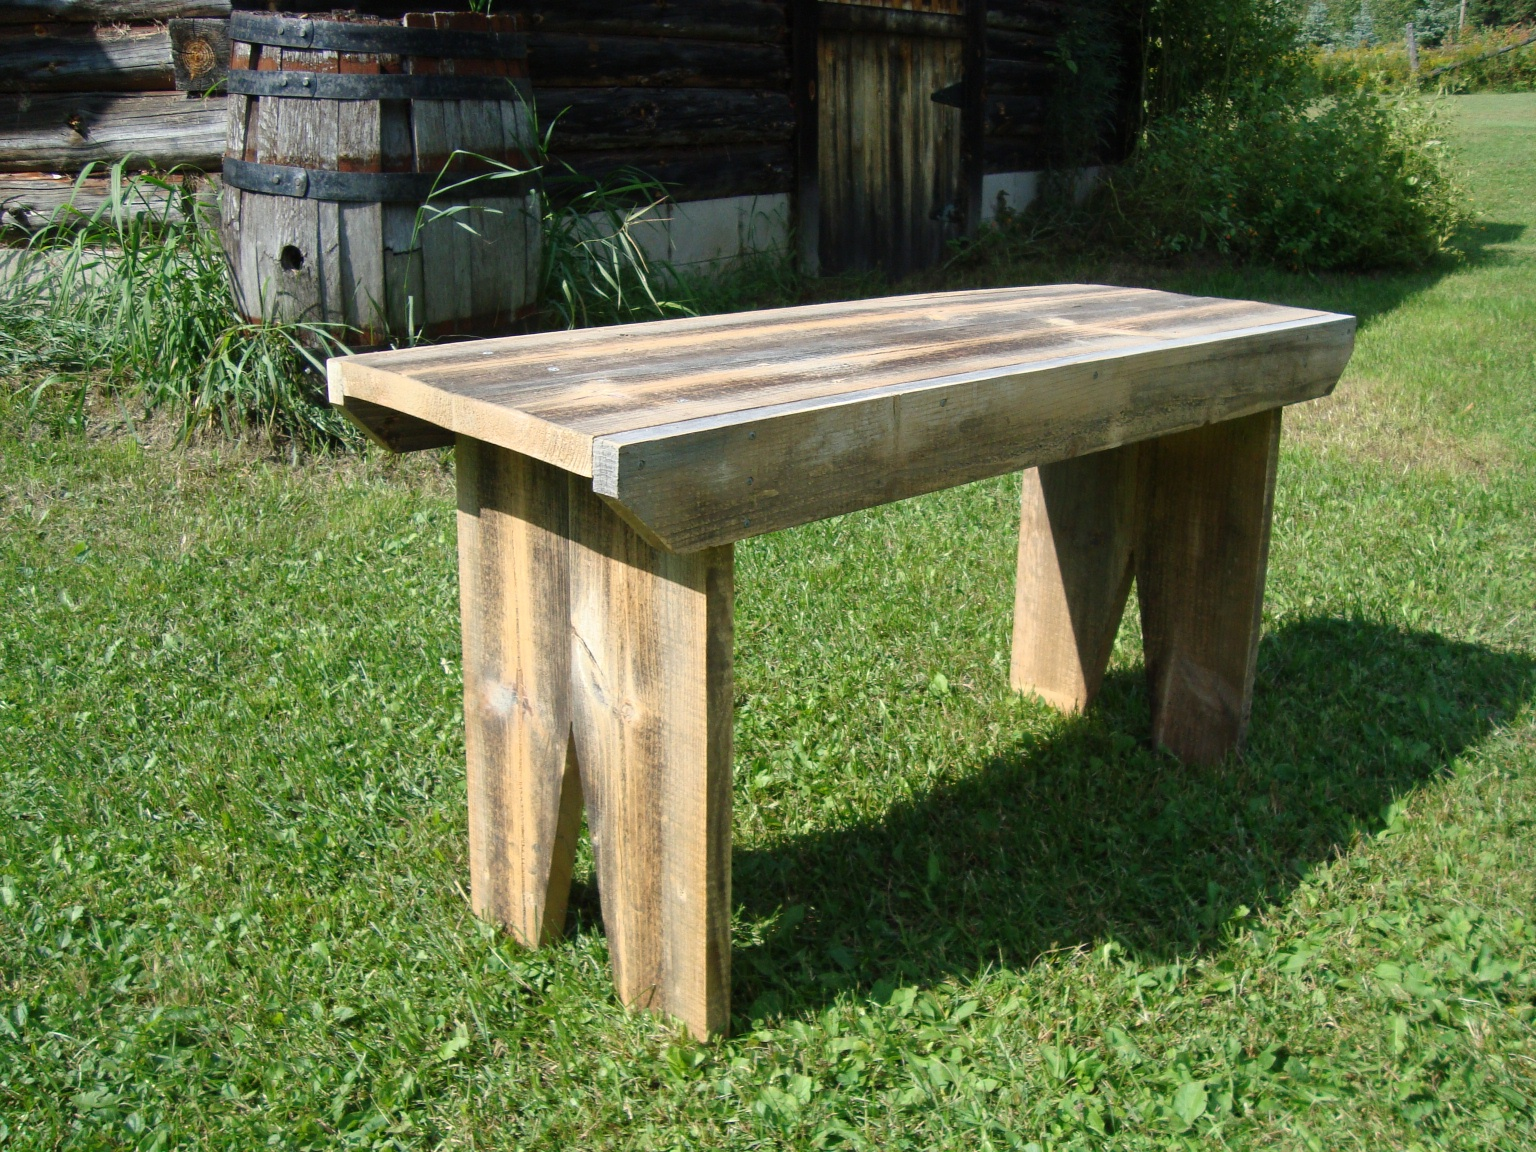 Wood Project Ideas: Barn wood bench plans